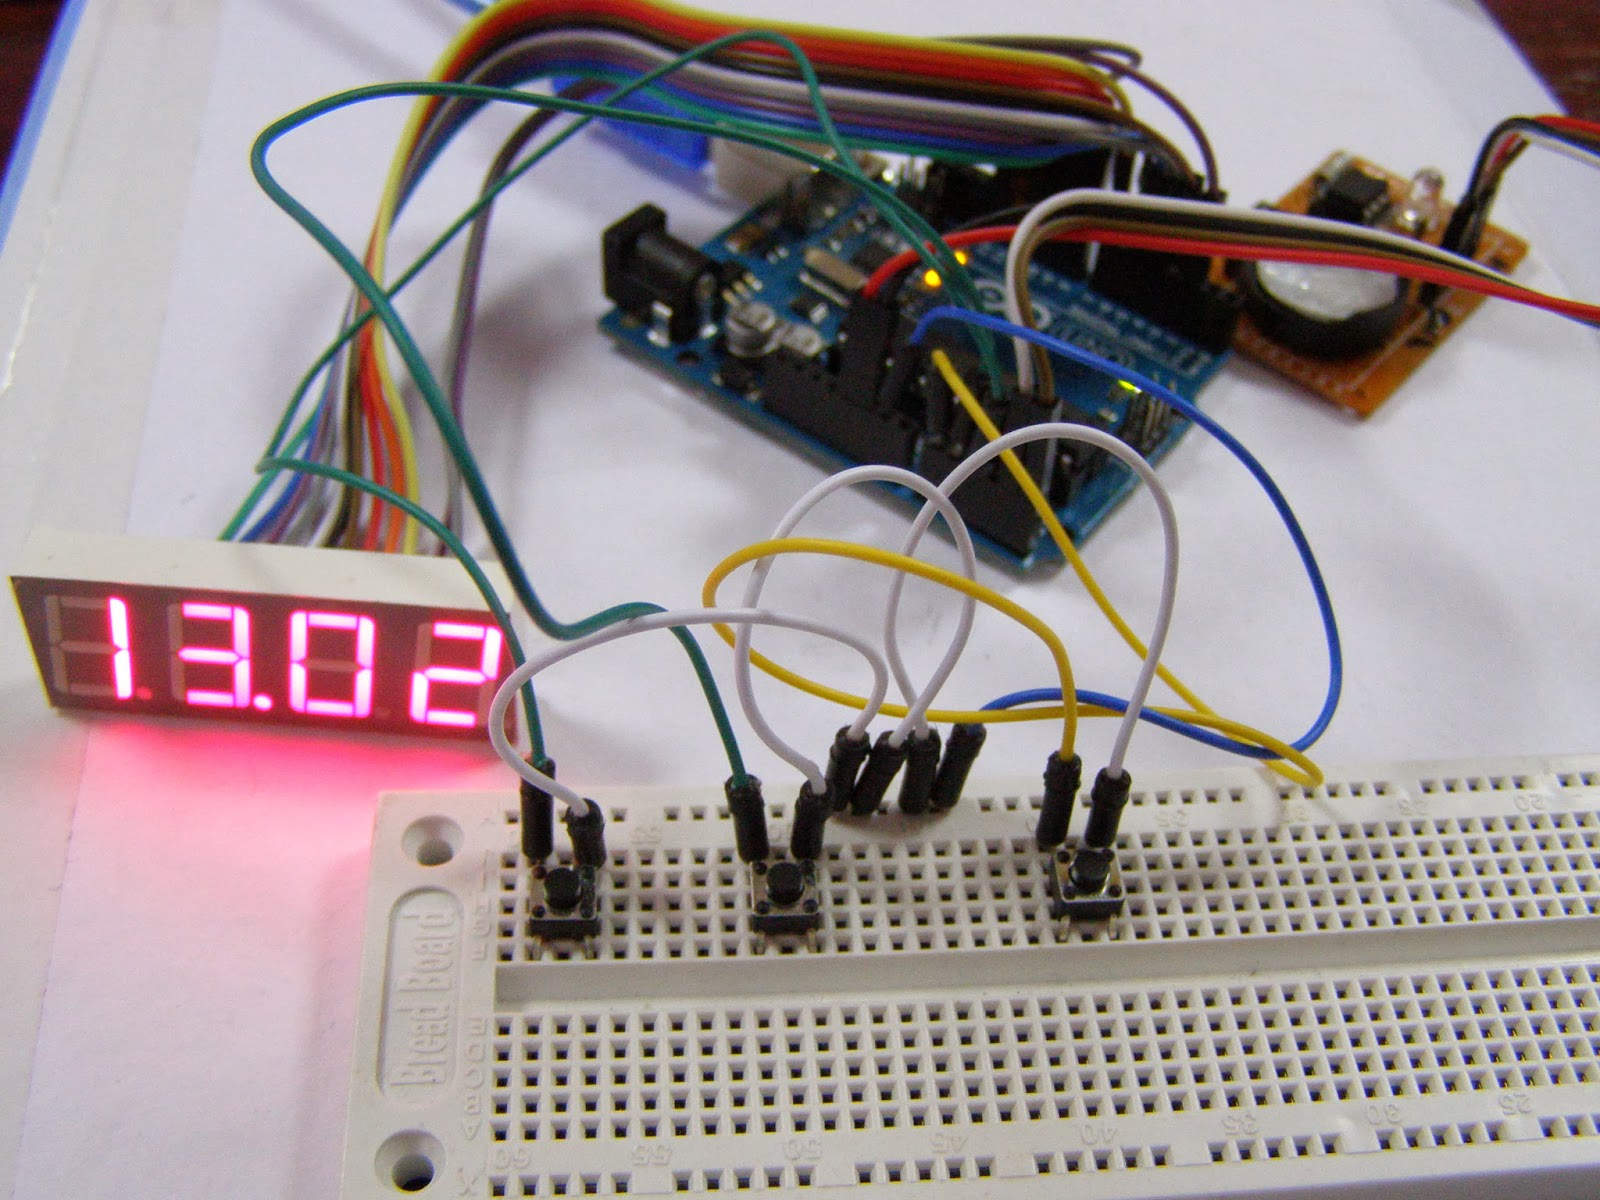 Arduino Tehniq Manual Adjust For Rtc Clock With And 7 Here Http Arduinoinfowikispacescom Popularics Scroll Down A Good Must Use Real Time Like Ds1307 Enthusiasts Hobbylist Exists Some Module But You Can Made